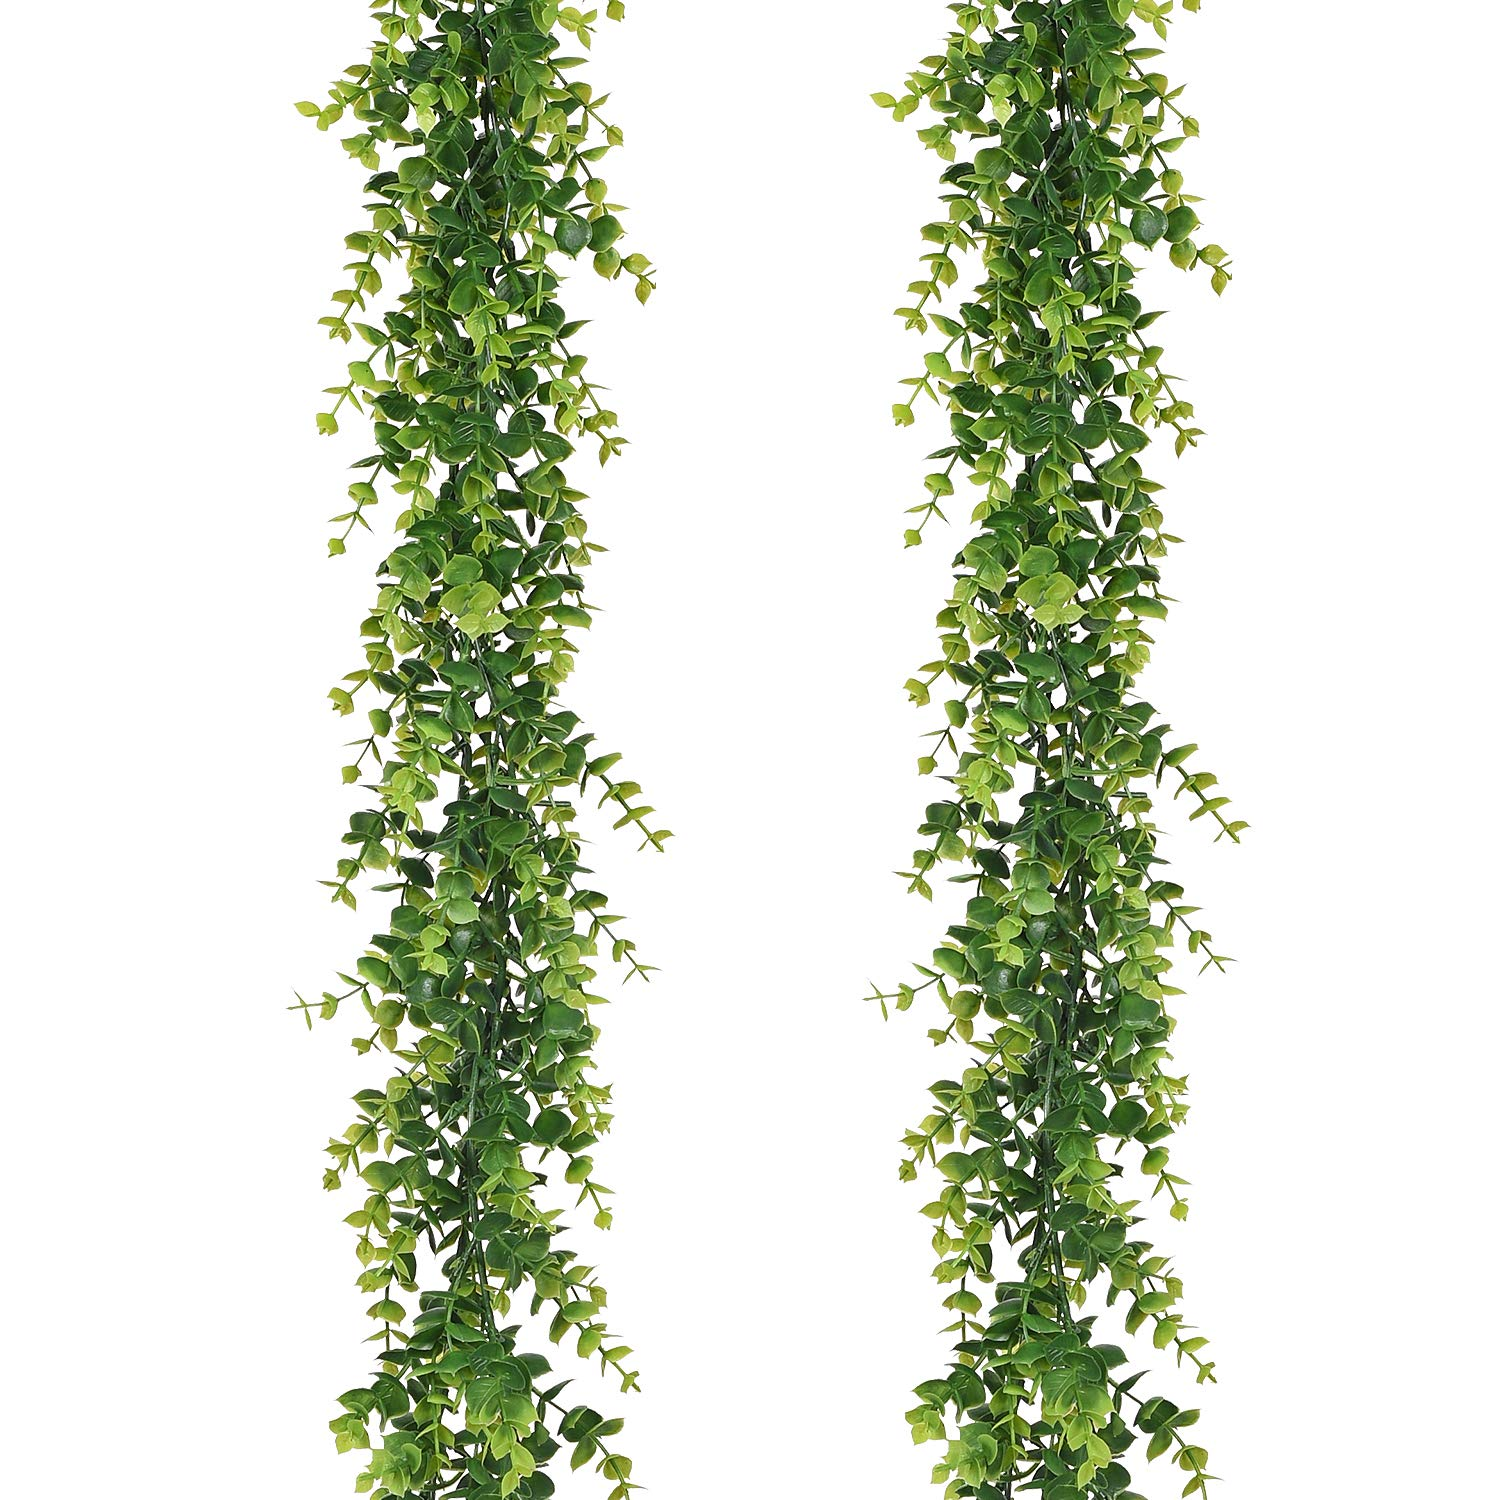 Artificial Vines Faux Eucalyptus Garland 2 Pack Fake